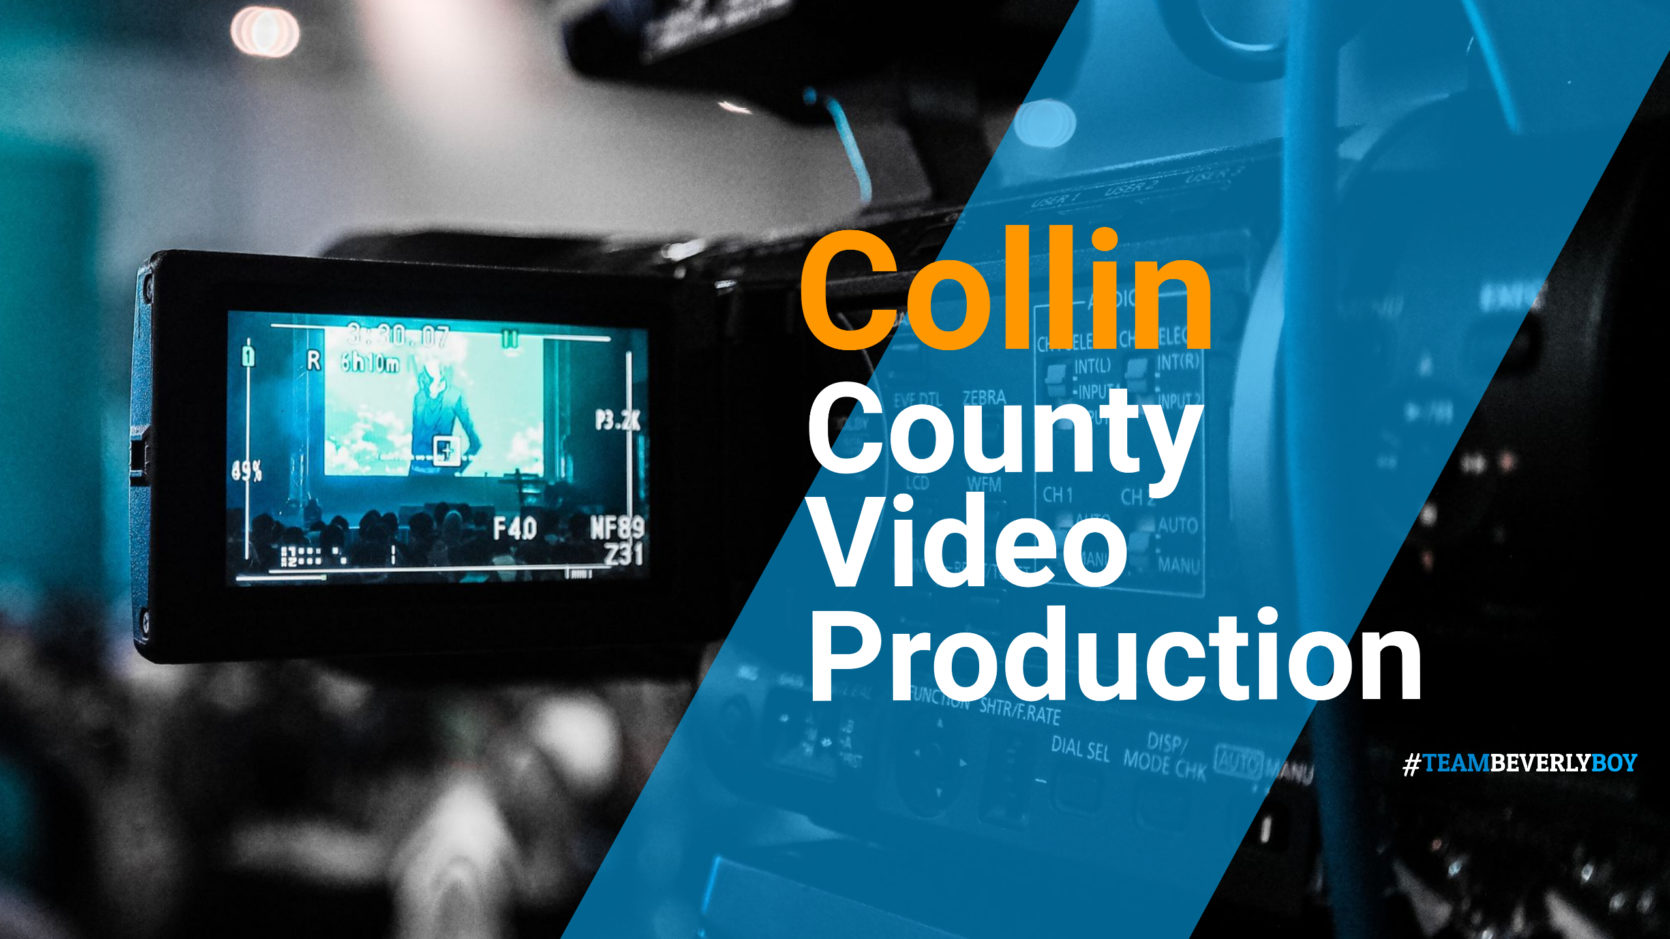 Collin County Video Production